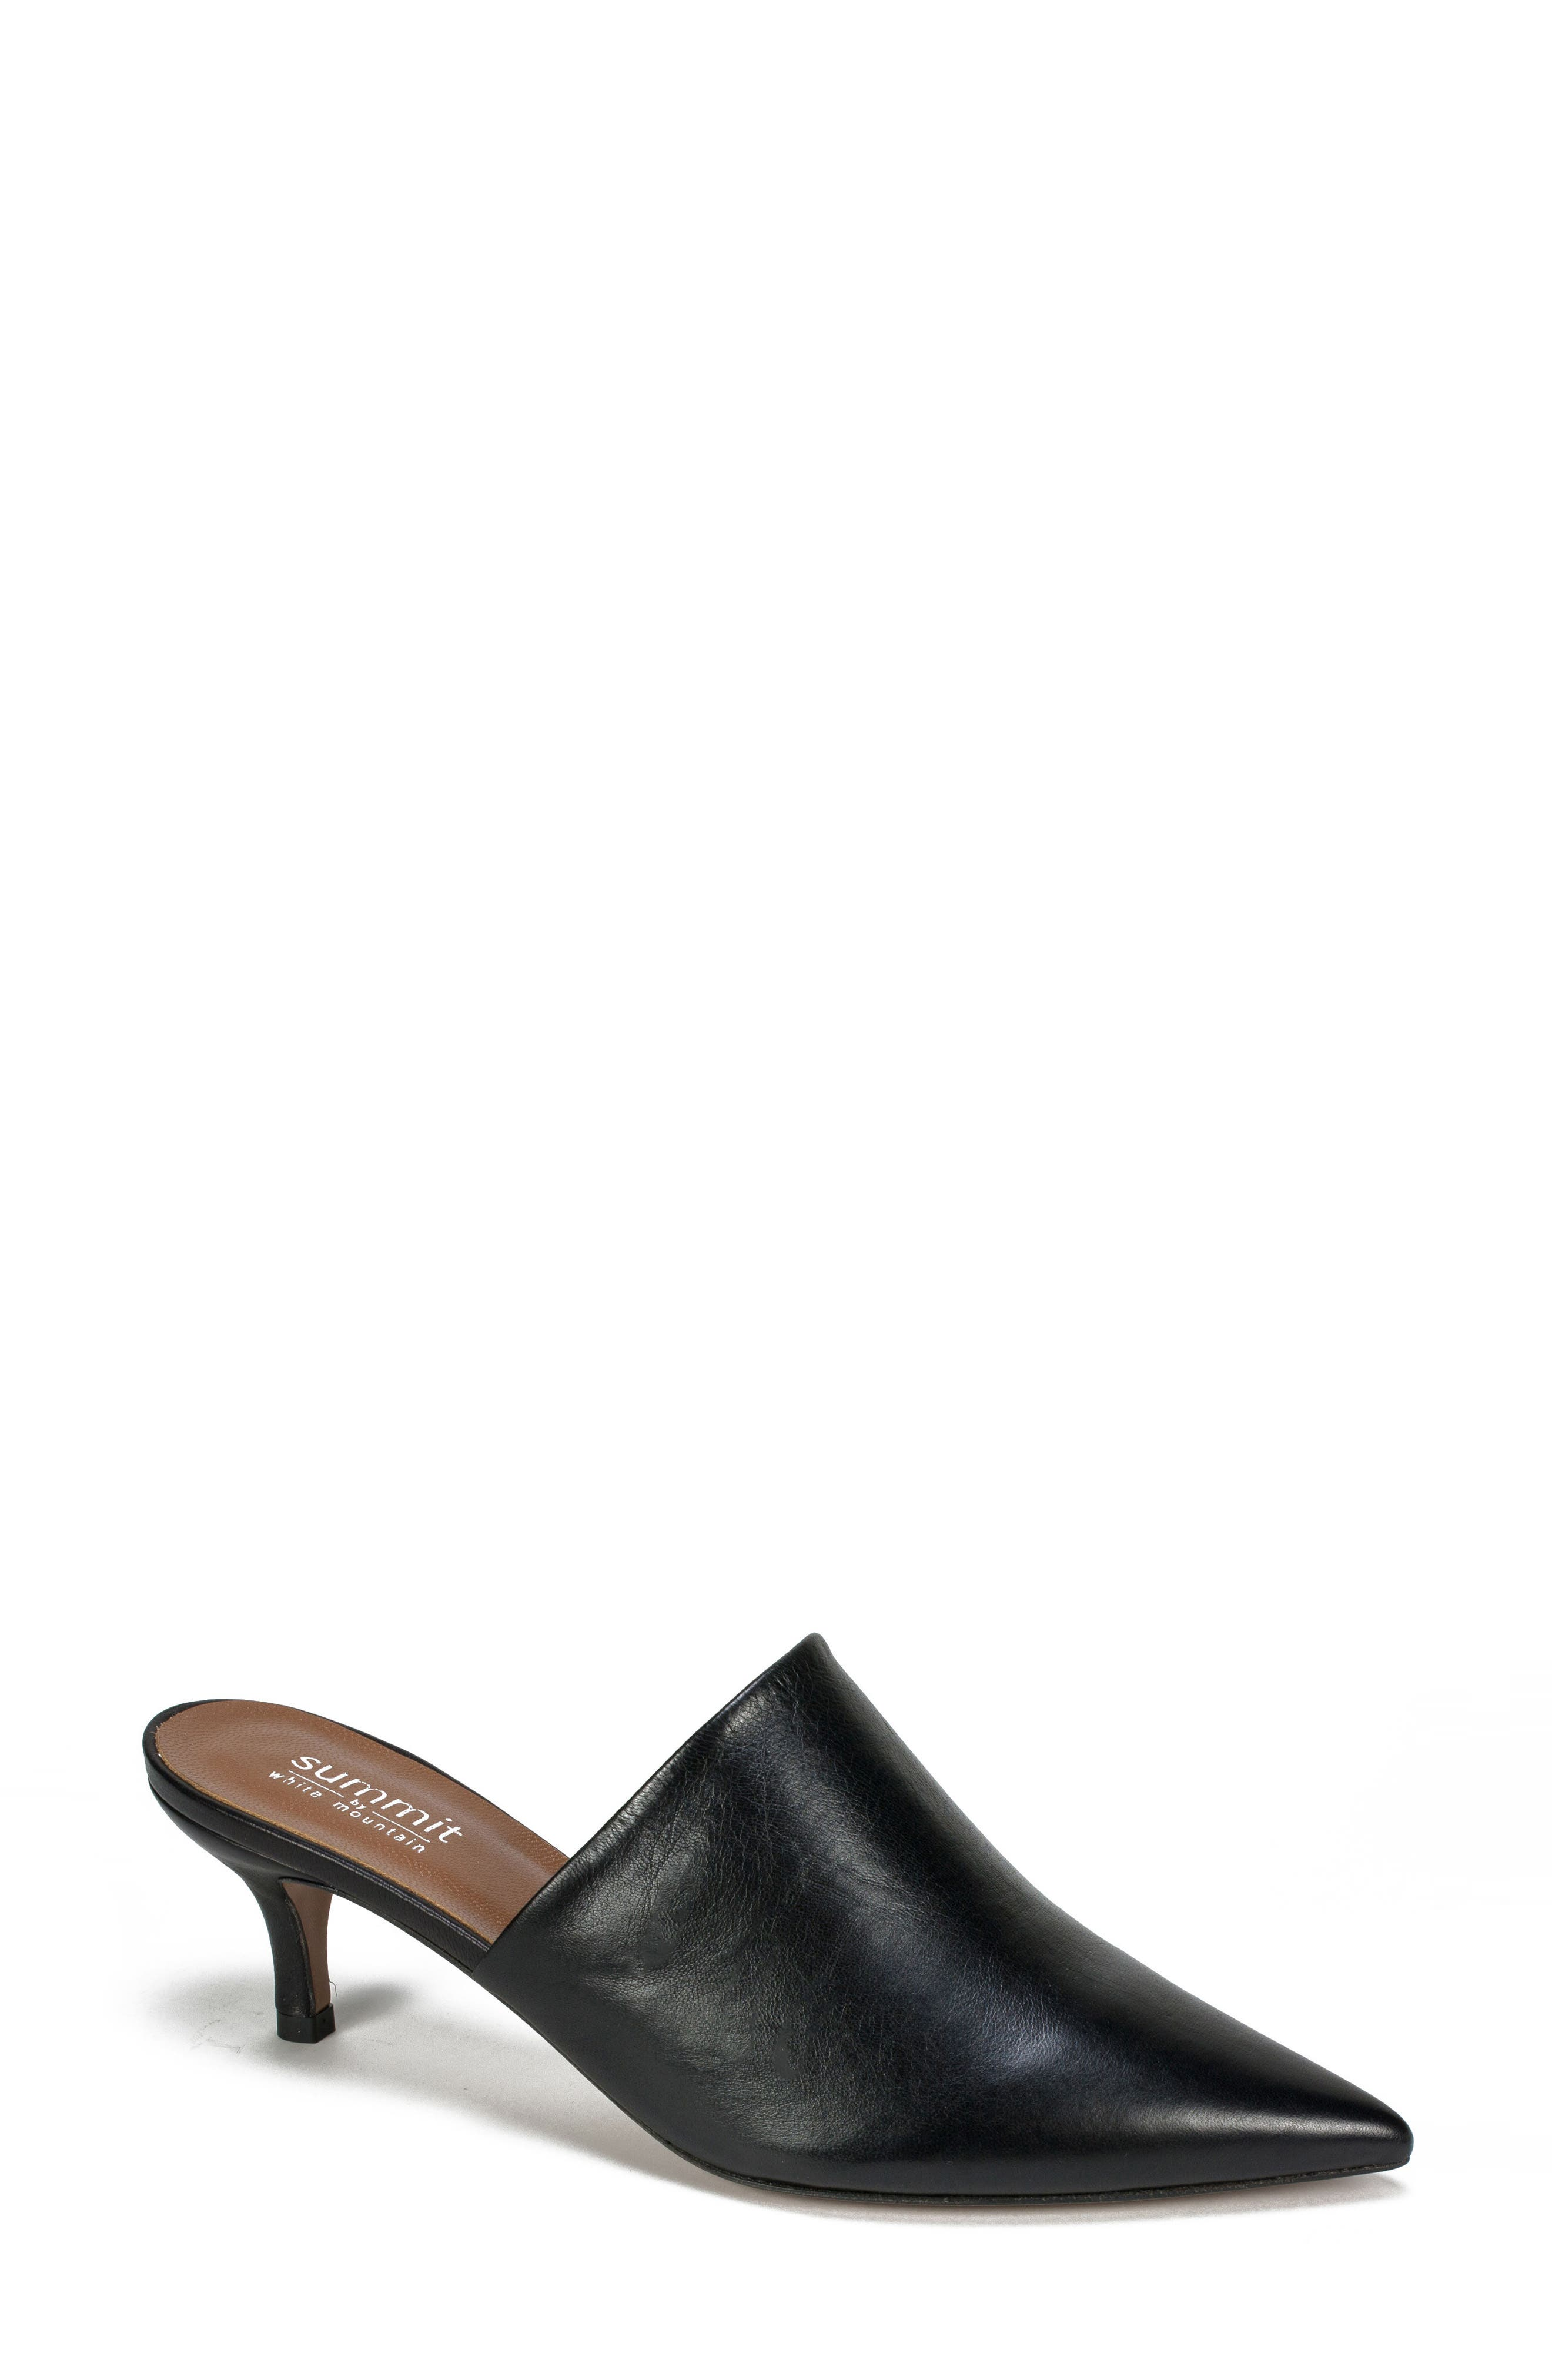 Summit Piper Pointy Toe Mule